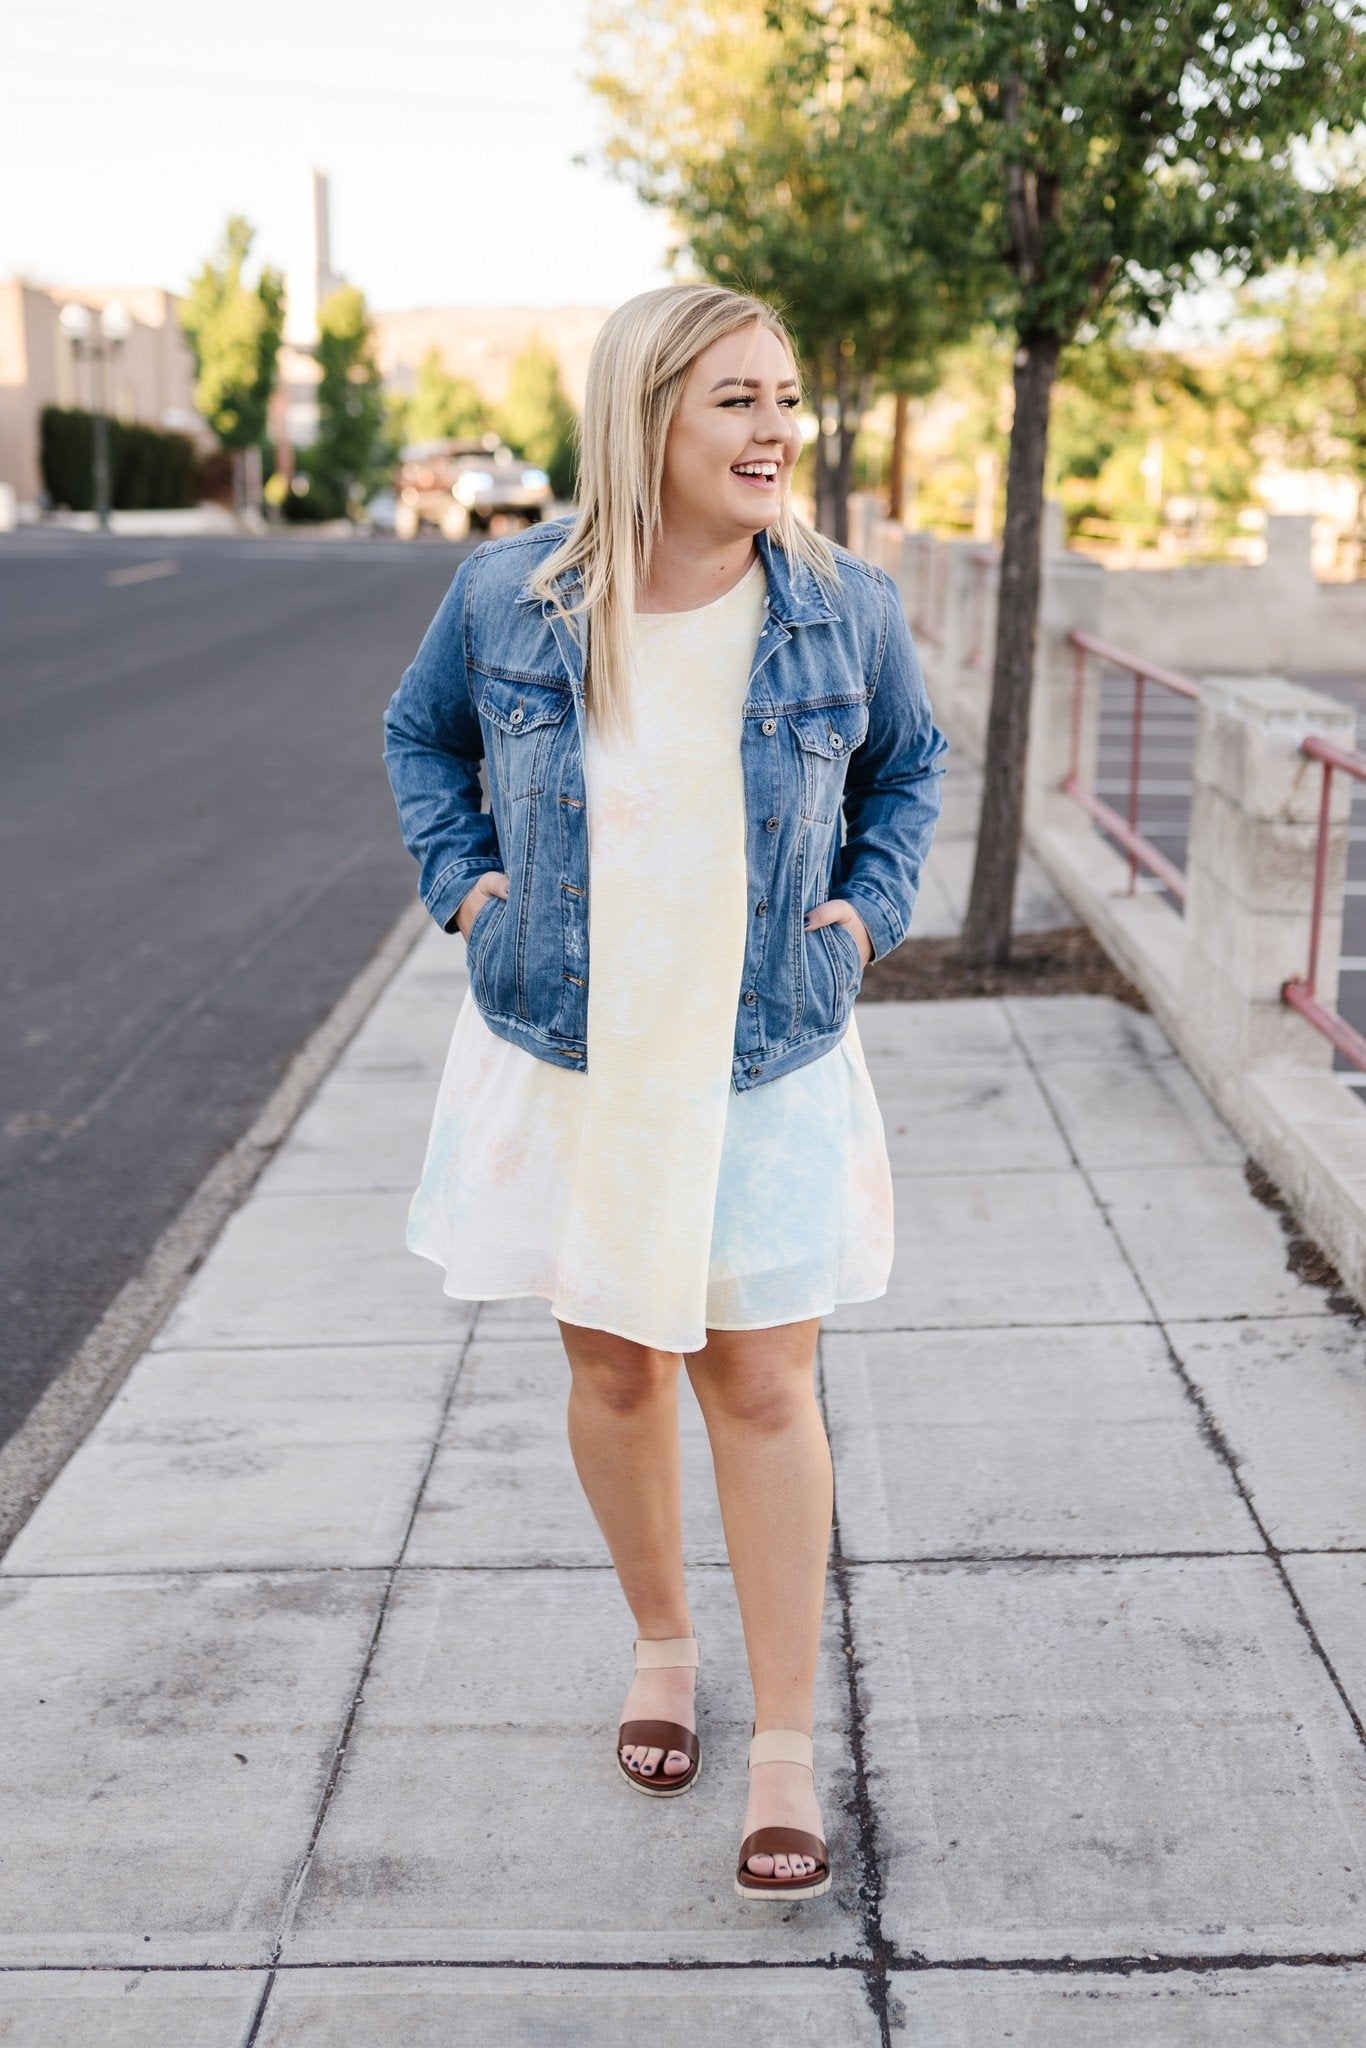 Sherbert Skies Summer Dress - Thongin' It Boutique